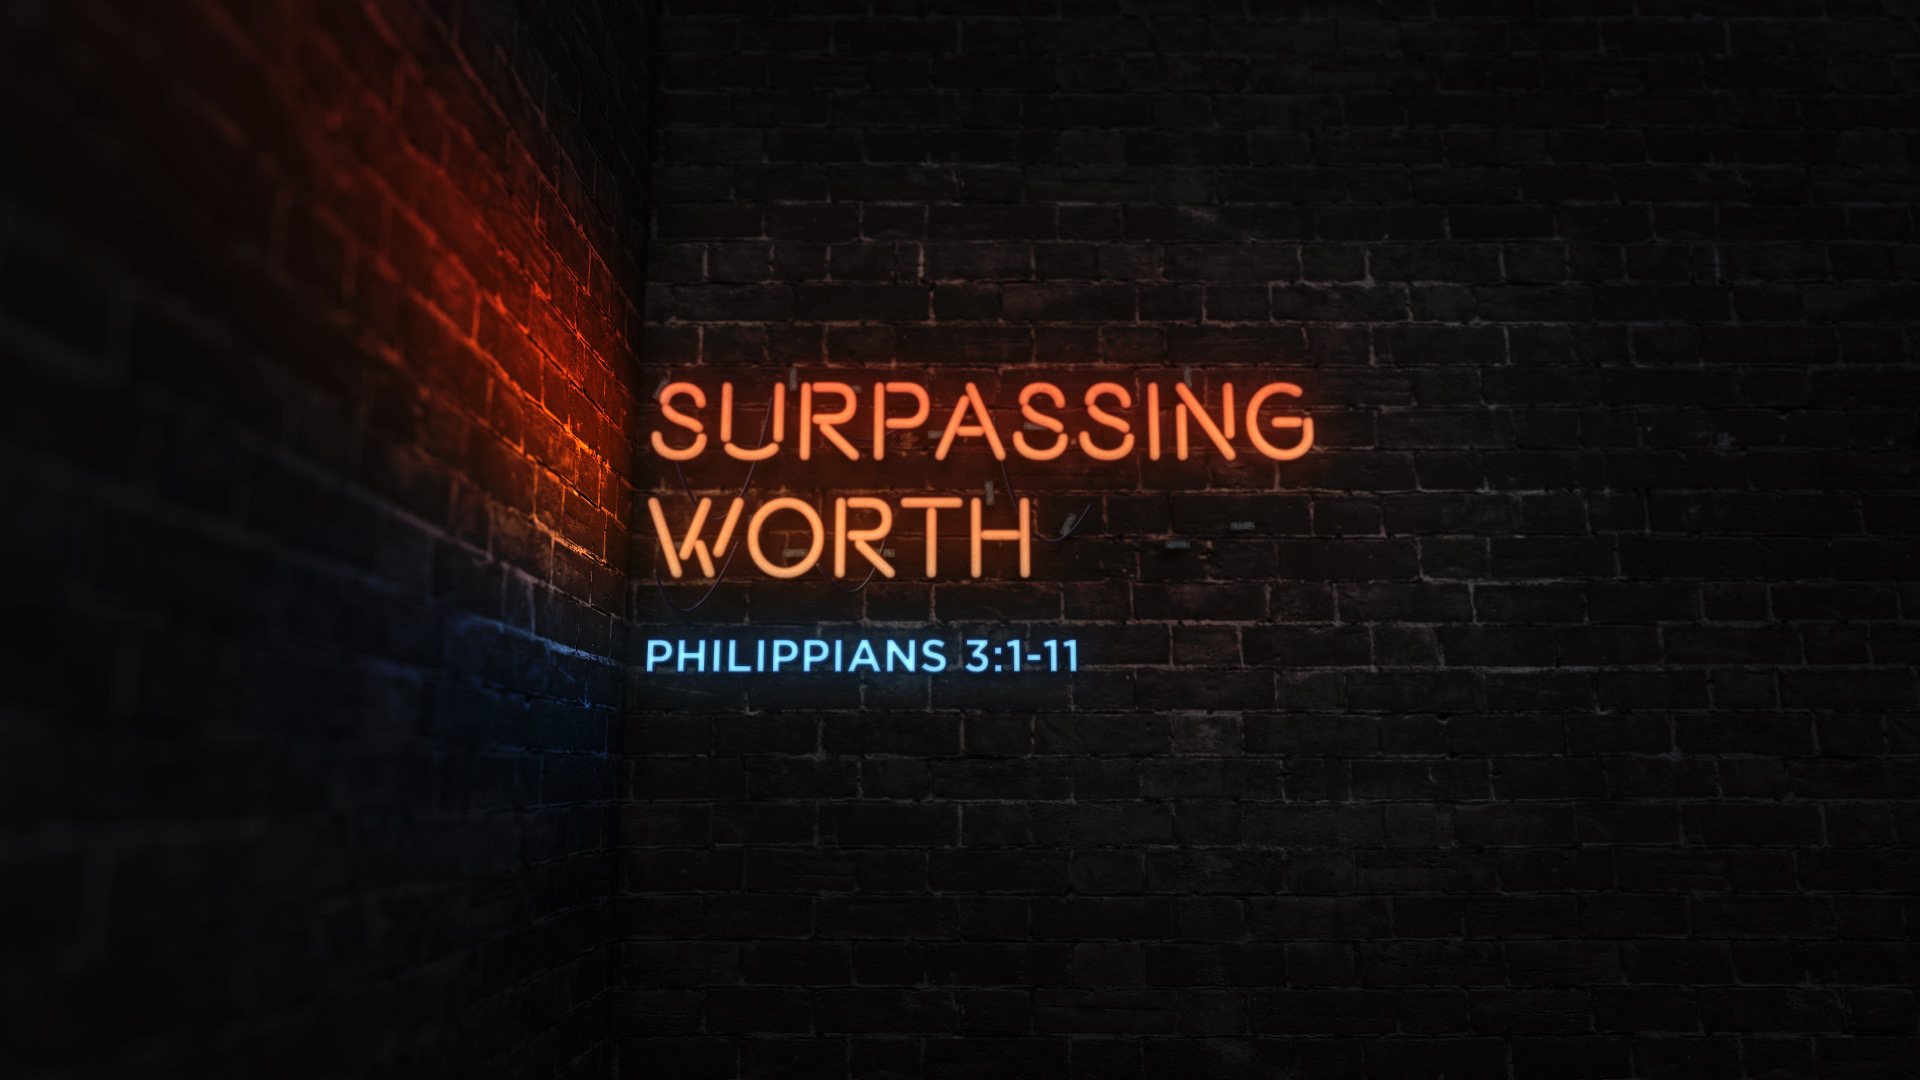 Surpassing Worth